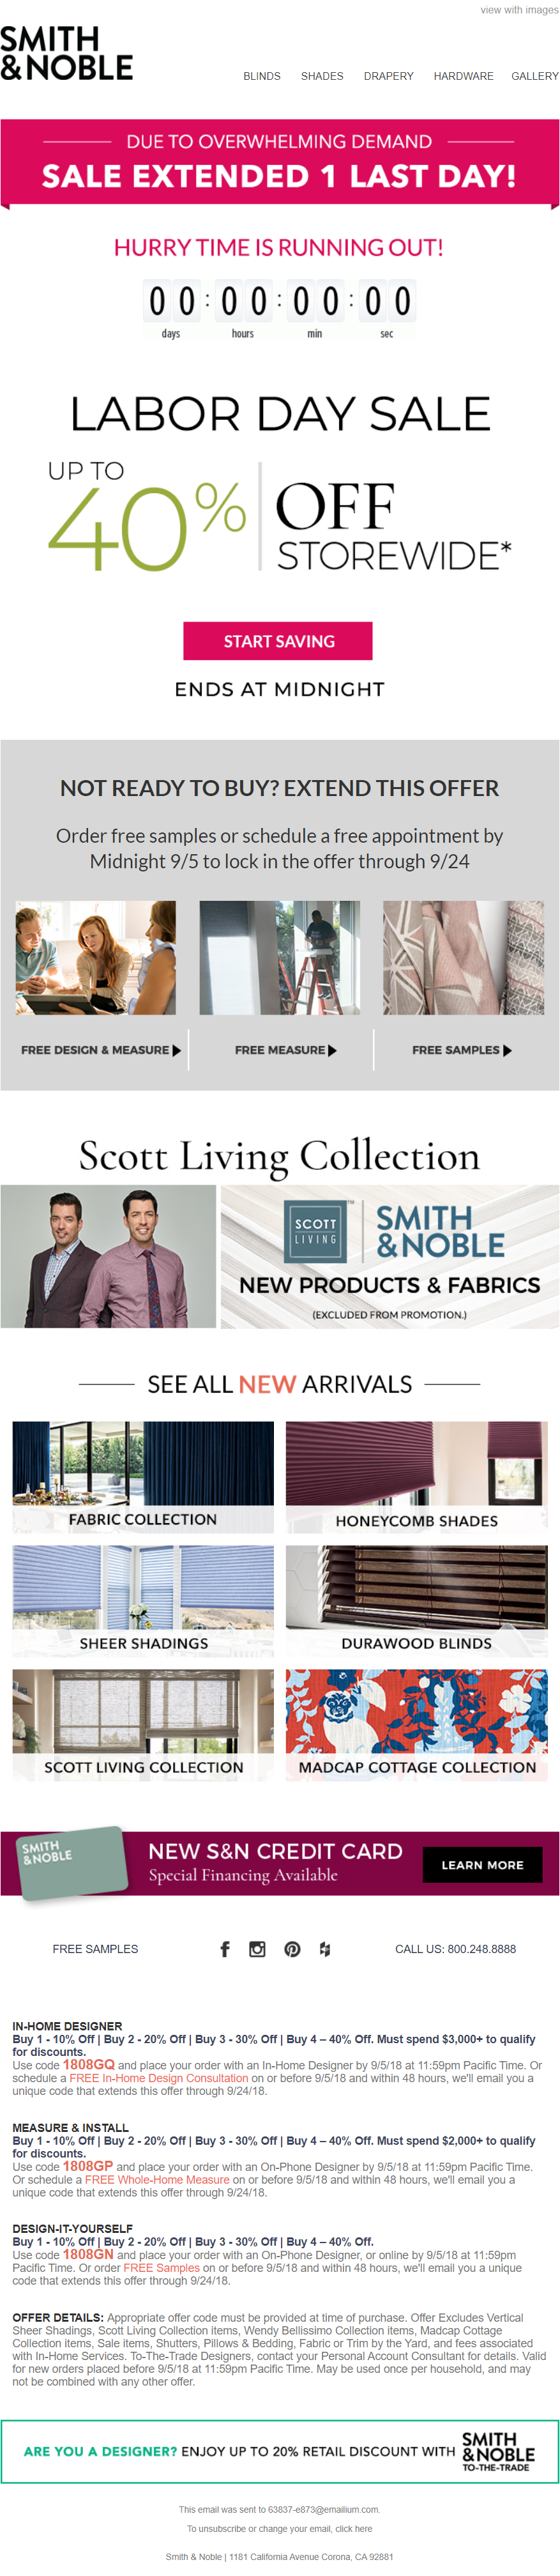 smith & nobles labor day email